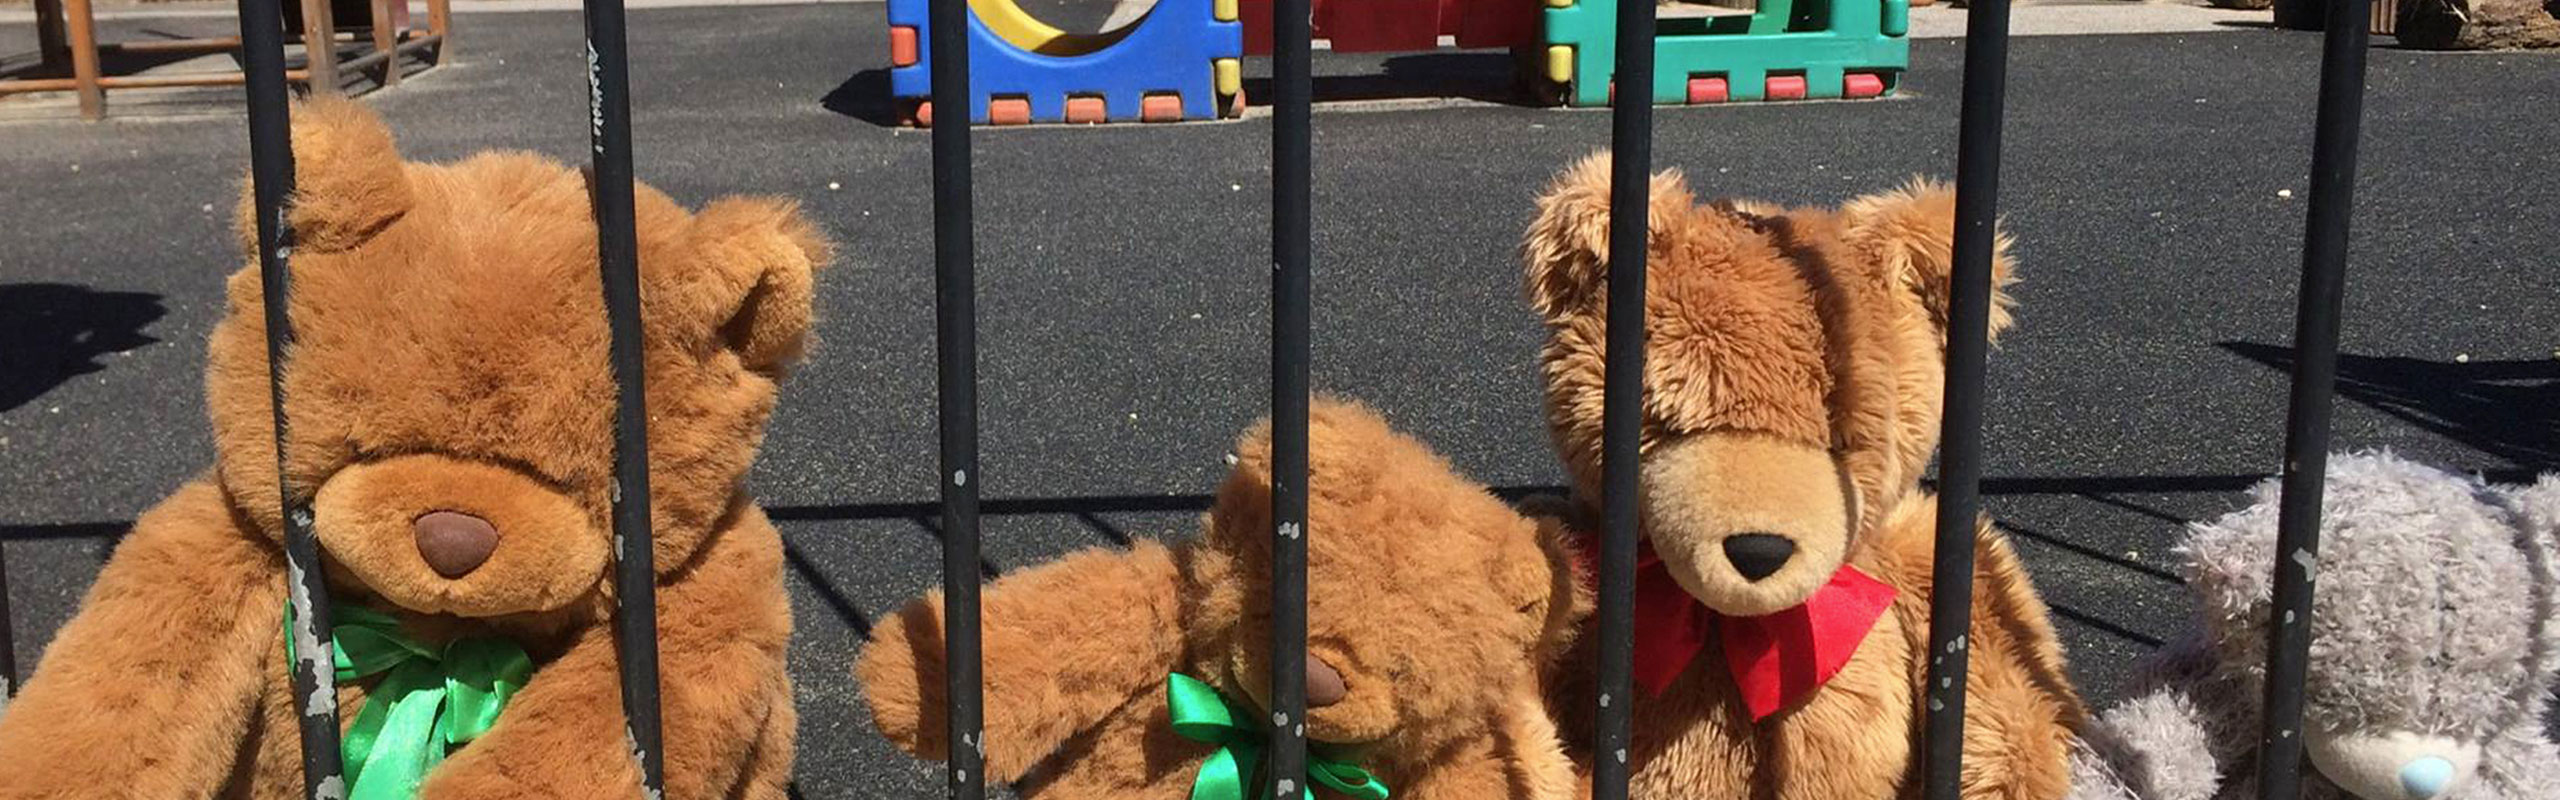 Teddys at a school fence with play equipment in the background.